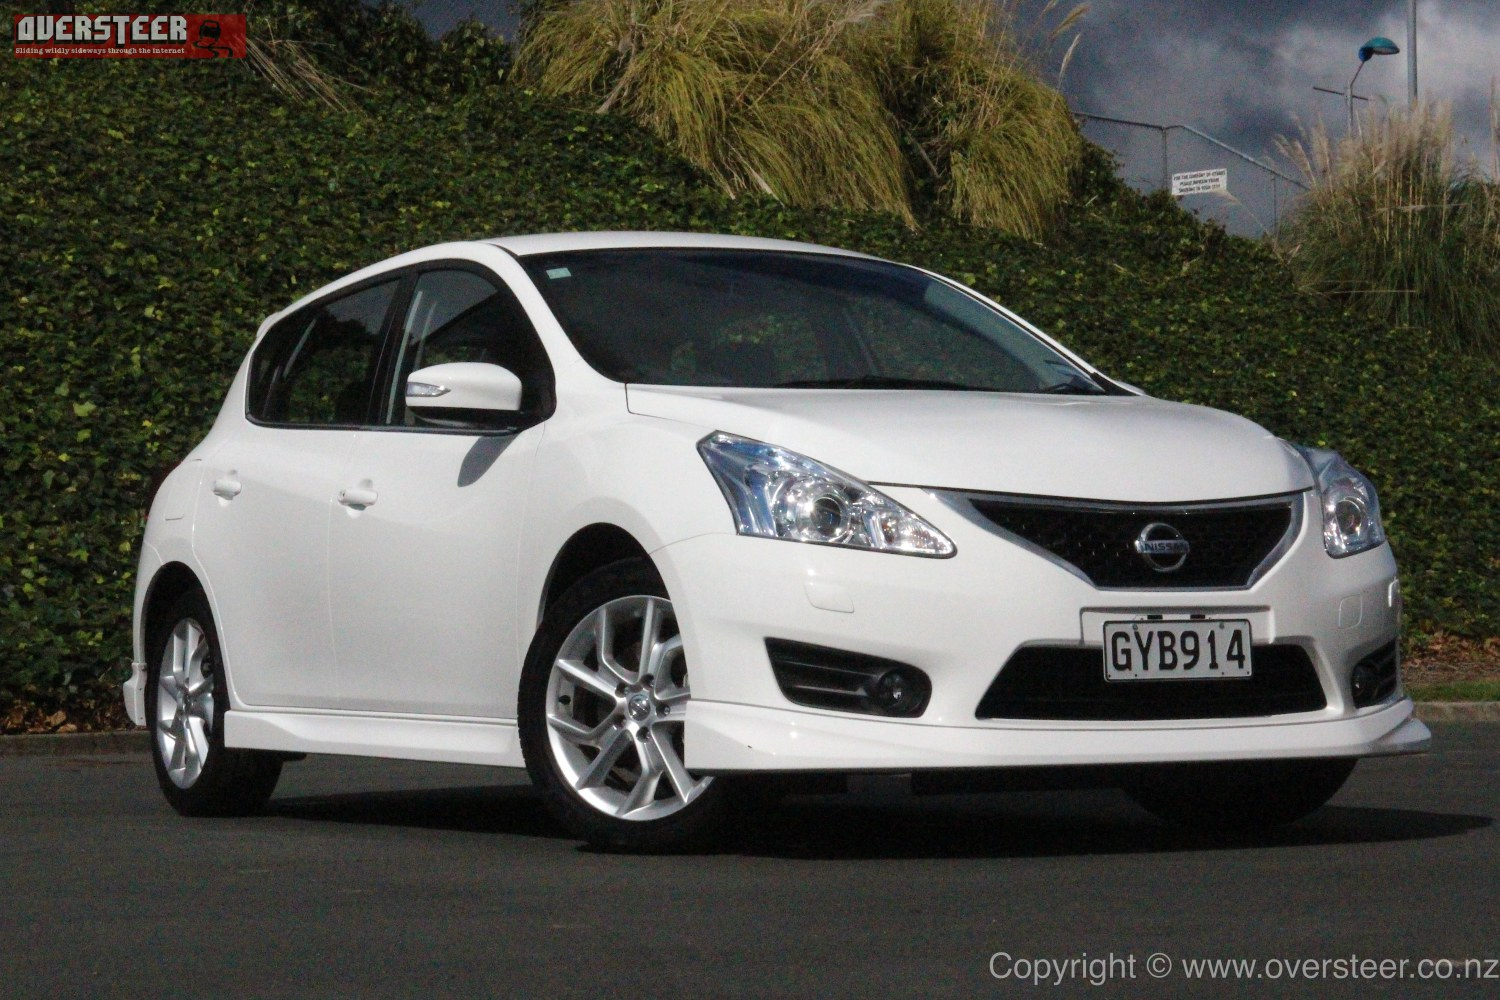 Nissan Primera 2 0 1996 Specs And Images also 2575088 Custom Hilux Tray For Sale in addition 2015 Nissan Pulsar Sss Sedan Review Road Test 35128 additionally 2014 Nissan Juke Review 12732 moreover 2015 Nissan Pulsar Sss Sedan Front Press Image. on nissan pulsar sss